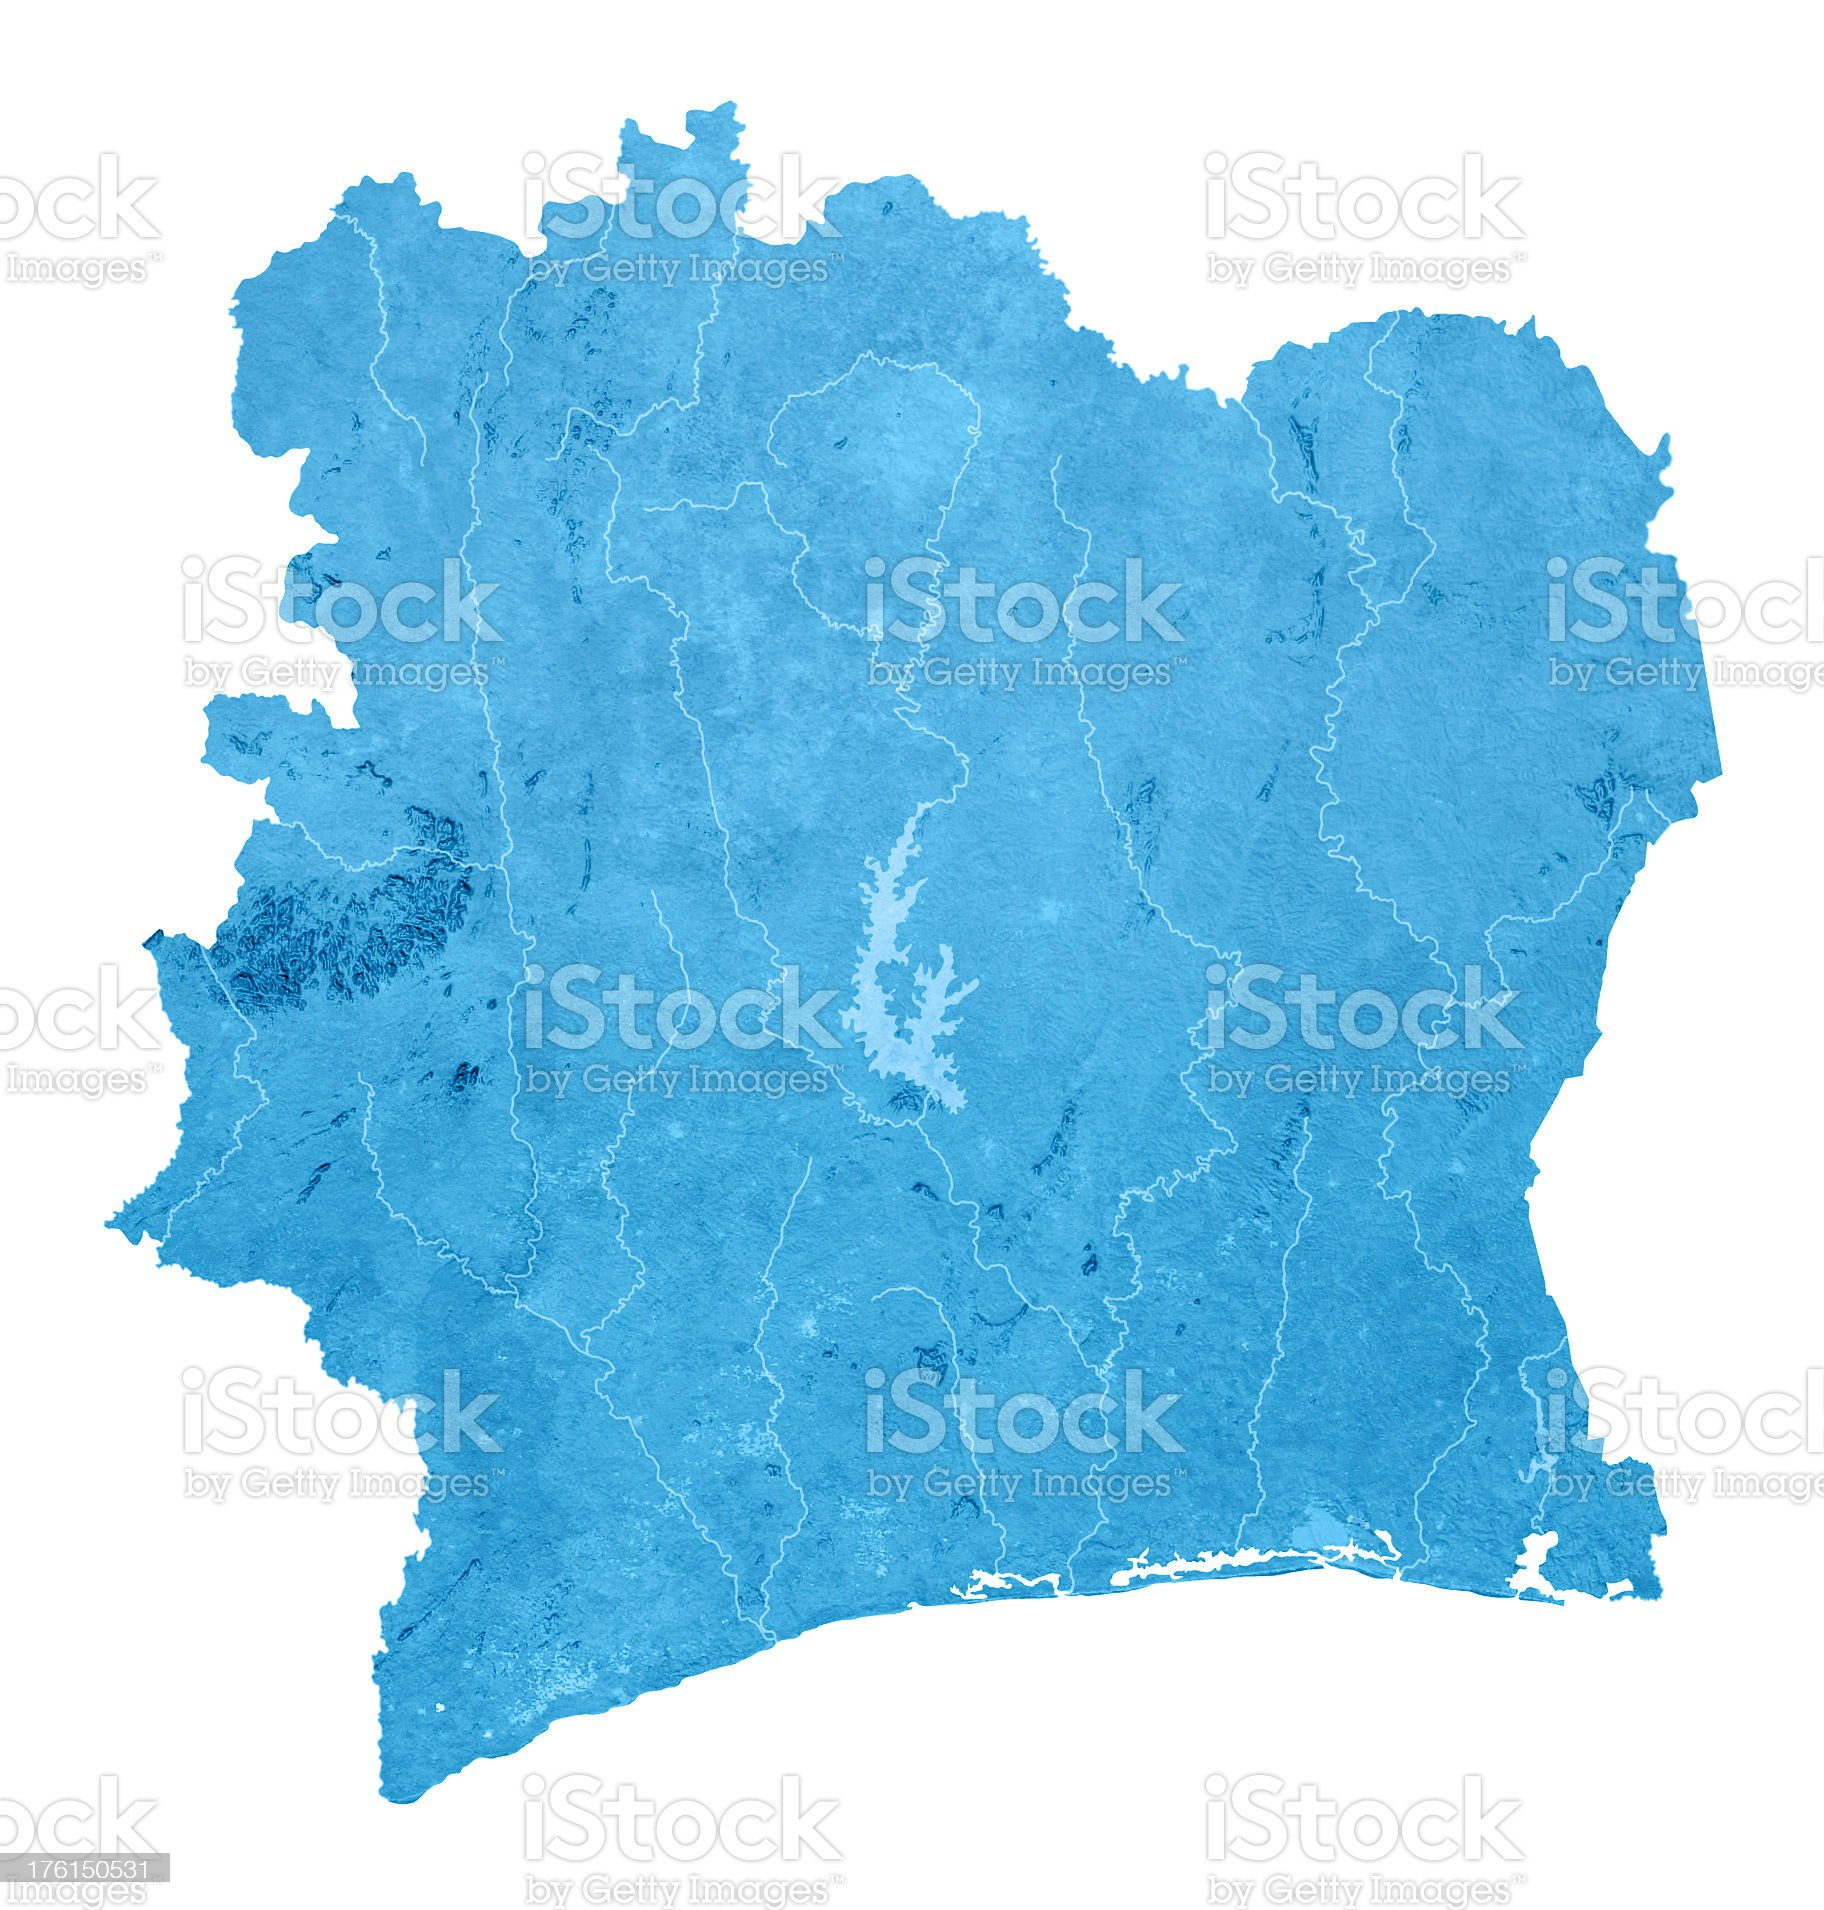 Cote d'Ivoire Topographic Map Isolated royalty-free stock photo